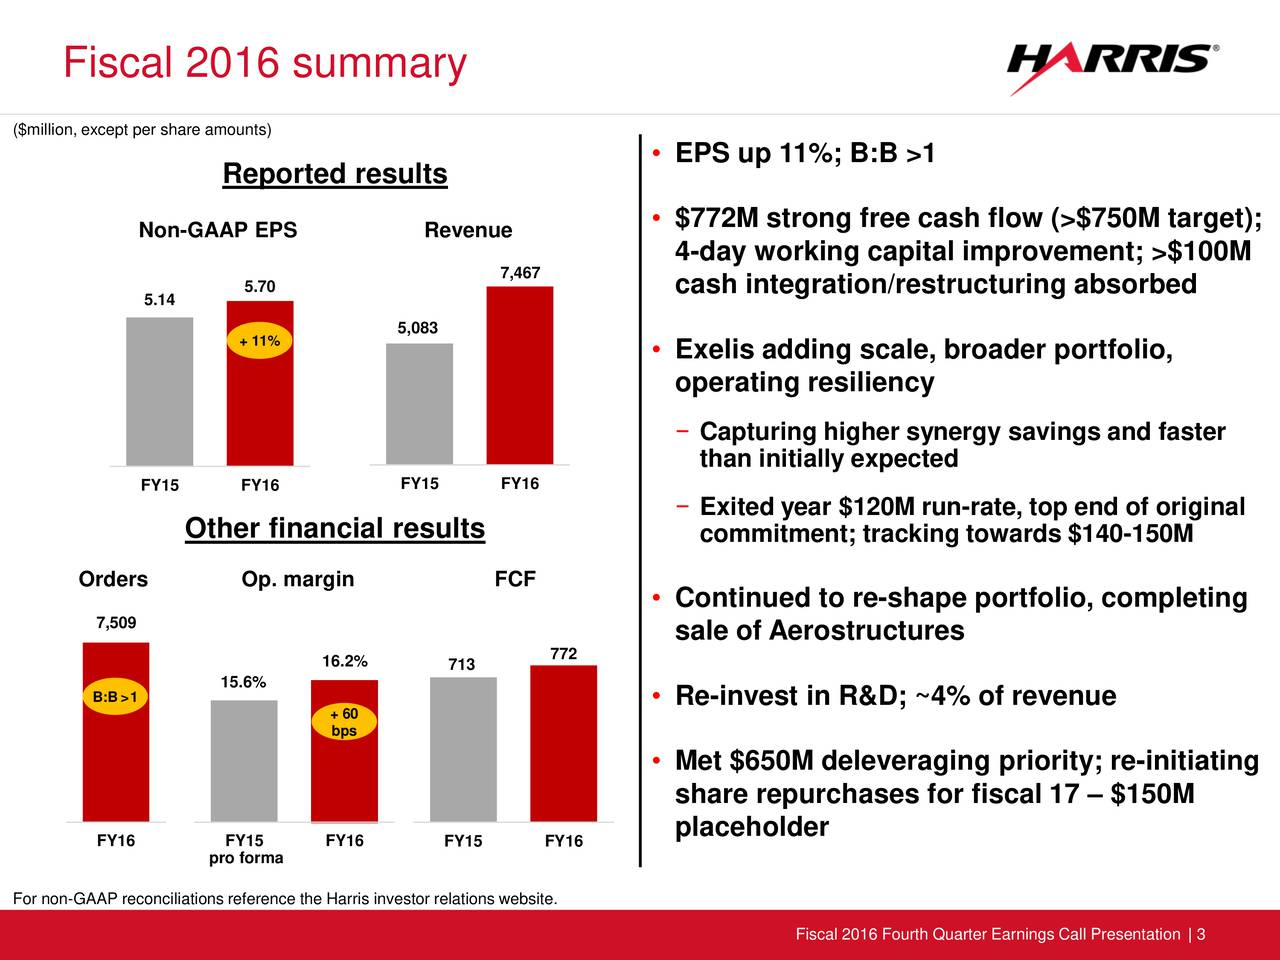 ($million, except per share amounts) EPS up 11%; B:B >1 Reported results Non-GAAP EPS Revenue  $772M strong free cash flow (>$750M target); 4-day working capital improvement; >$100M 7,467 5.70 cash integration/restructuring absorbed 5.14 5,083 + 11%  Exelis adding scale, broader portfolio, operating resiliency Capturing higher synergy savings and faster than initially expected FY15 FY16 FY15 FY16 Exited year $120M run-rate, top end of original Other financial results commitment; tracking towards $140-150M Orders Op. margin FCF Continued to re-shape portfolio, completing 7,509 sale of Aerostructures 16.2% 713 772 15.6% B:B>1 + 60  Re-invest in R&D; ~4% of revenue bps Met $650M deleveraging priority; re-initiating share repurchases for fiscal 17  $150M placeholder FY16 pro forma FY16 FY15 FY16 For non-GAAP reconciliations reference the Harris investor relations website. Fiscal 2016 Fourth Quarter Earnings Call Presentation | 3